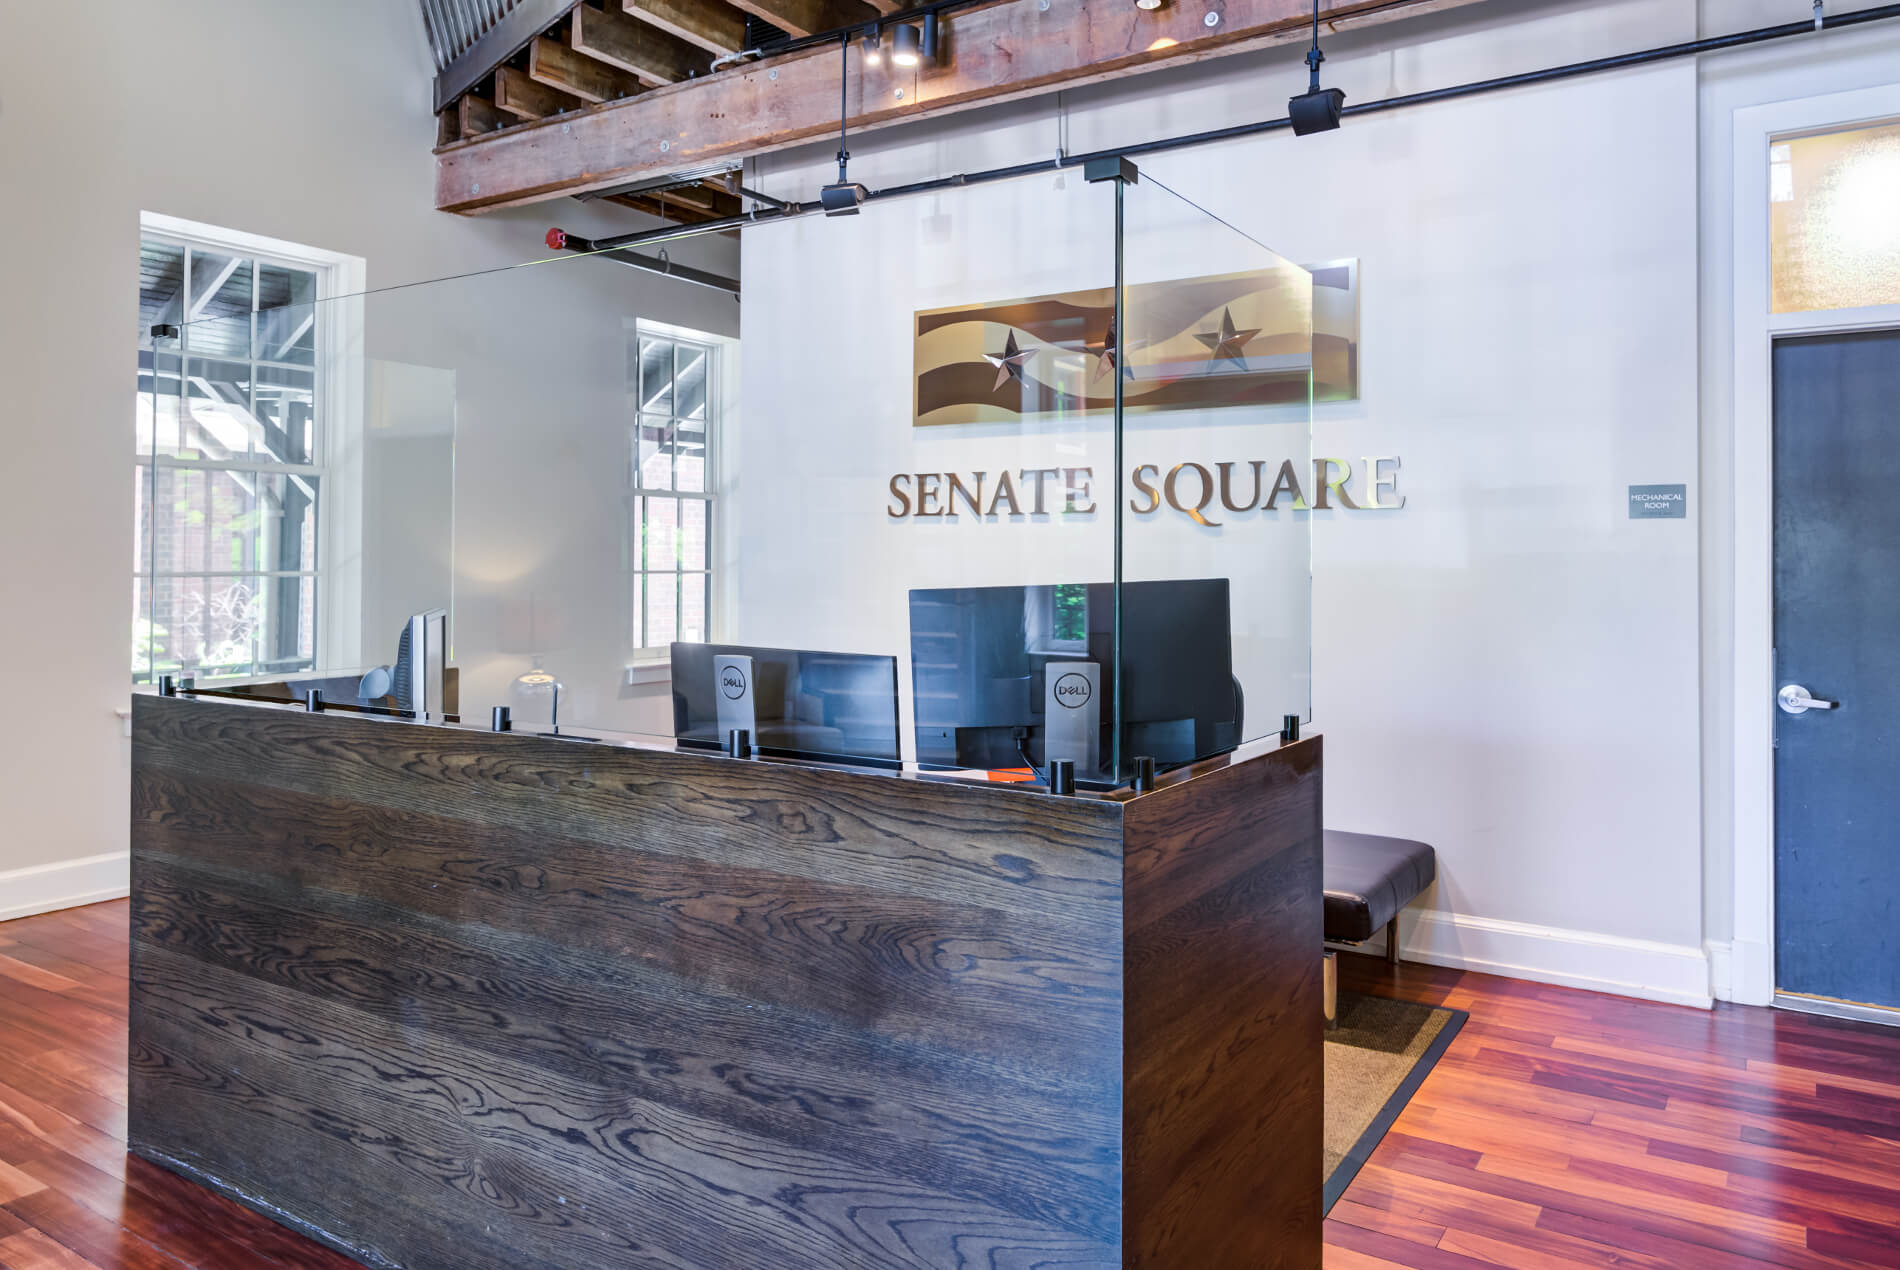 Lobby with concierge desk and Senate Square logo wall art